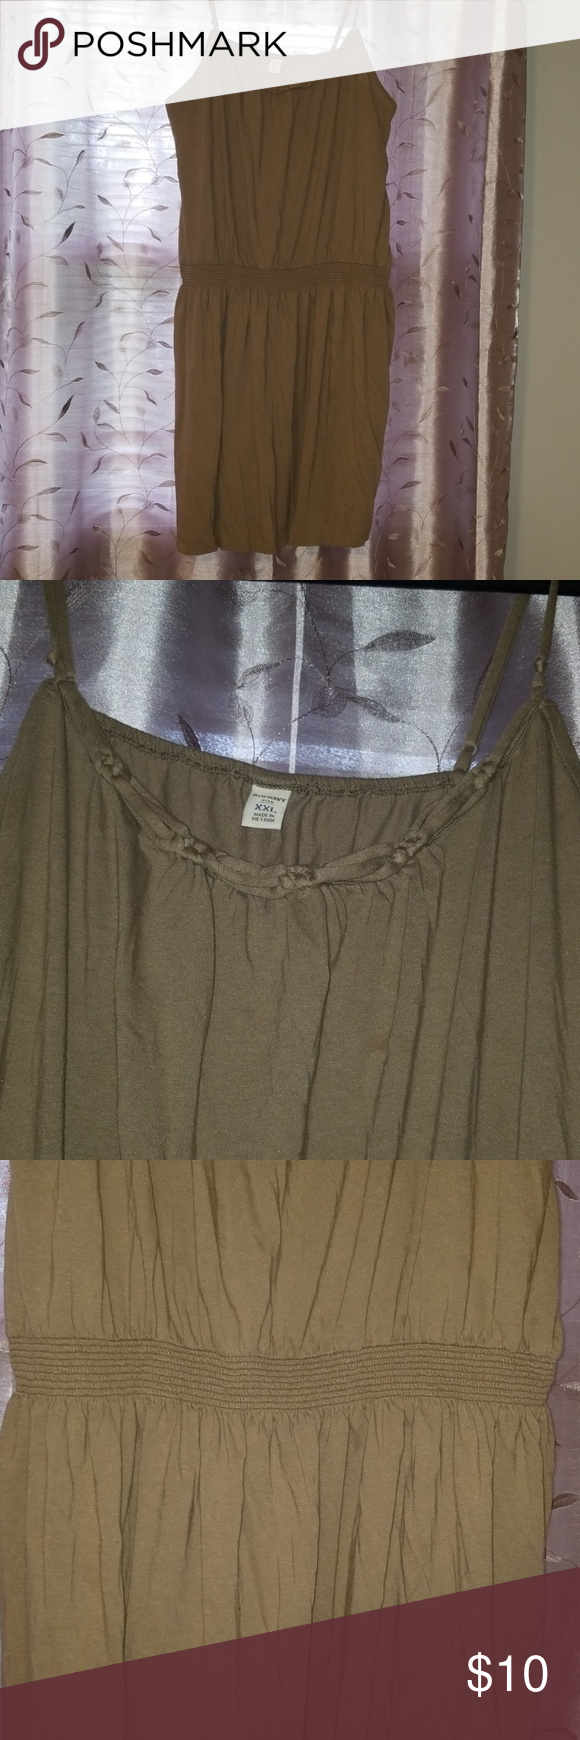 Old Navy Short Sundress Old Navy olive short sundress with braided detail around collar and detailed waistband.  Dress was worn with live. Some beading on backnof the dress. I tried to capture in last photo but it doesn't show in pics. Old Navy Dresses Mini #shortsundress